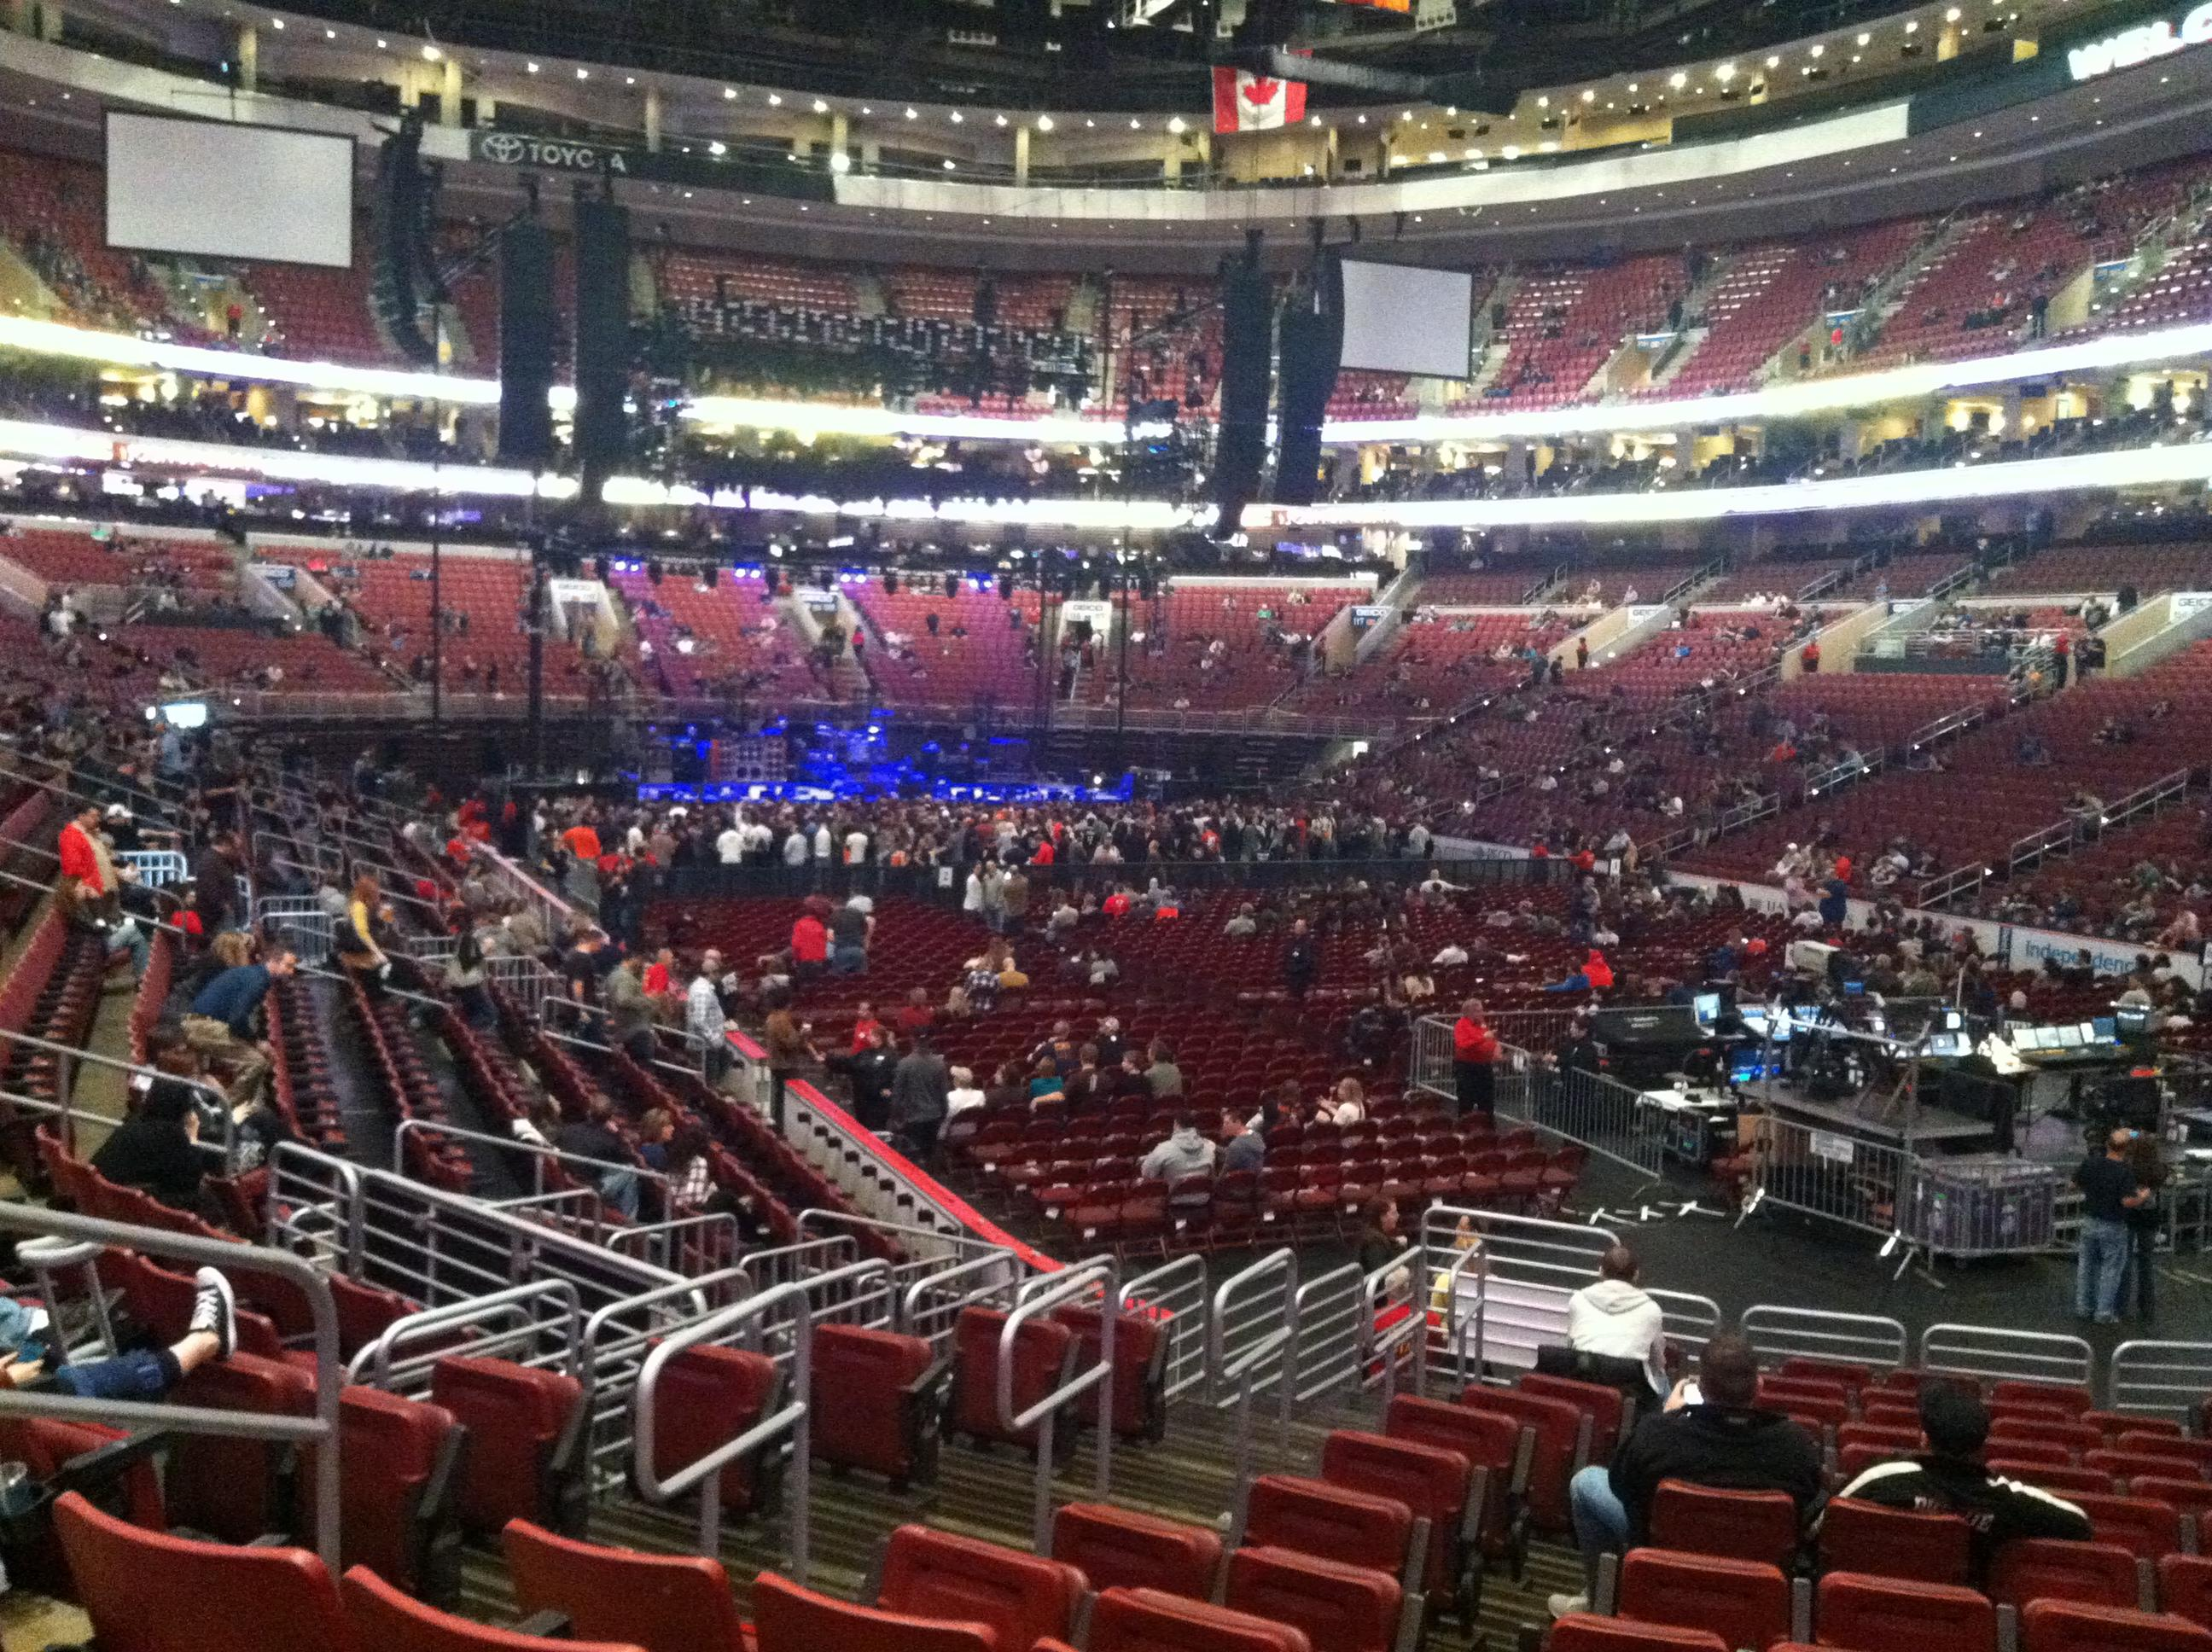 Seating view for Wells Fargo Center Section 105 Row 15 Seat 5